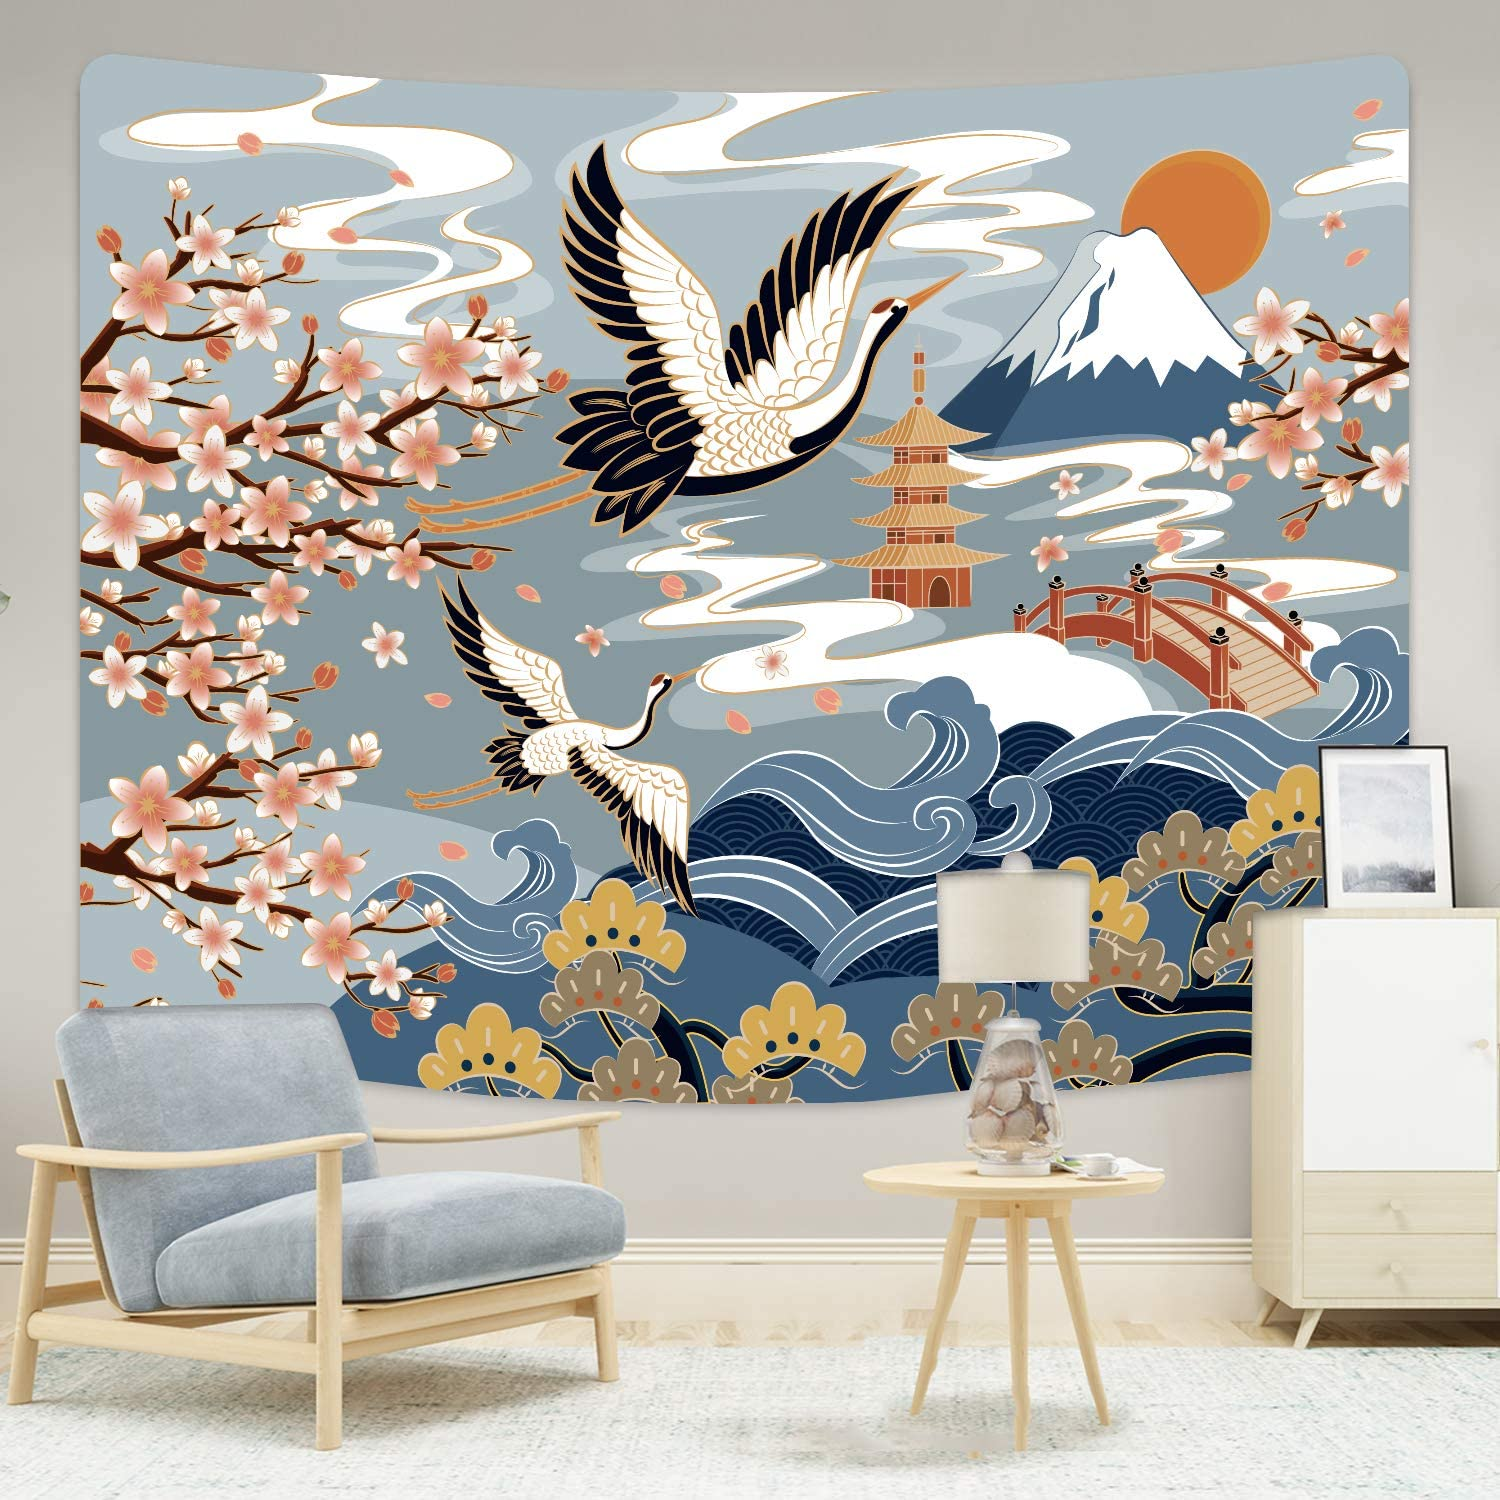 Kath & Cath Japanese Wave Tapestry, Ocean Sunset Sun Moon Tapestry, Great Wave Kanagawa Wall Tapestry Wall Hanging, Home Decorations for Living Room Bedroom Dorm Wall Decor in 60x80 Inches 150x200cm